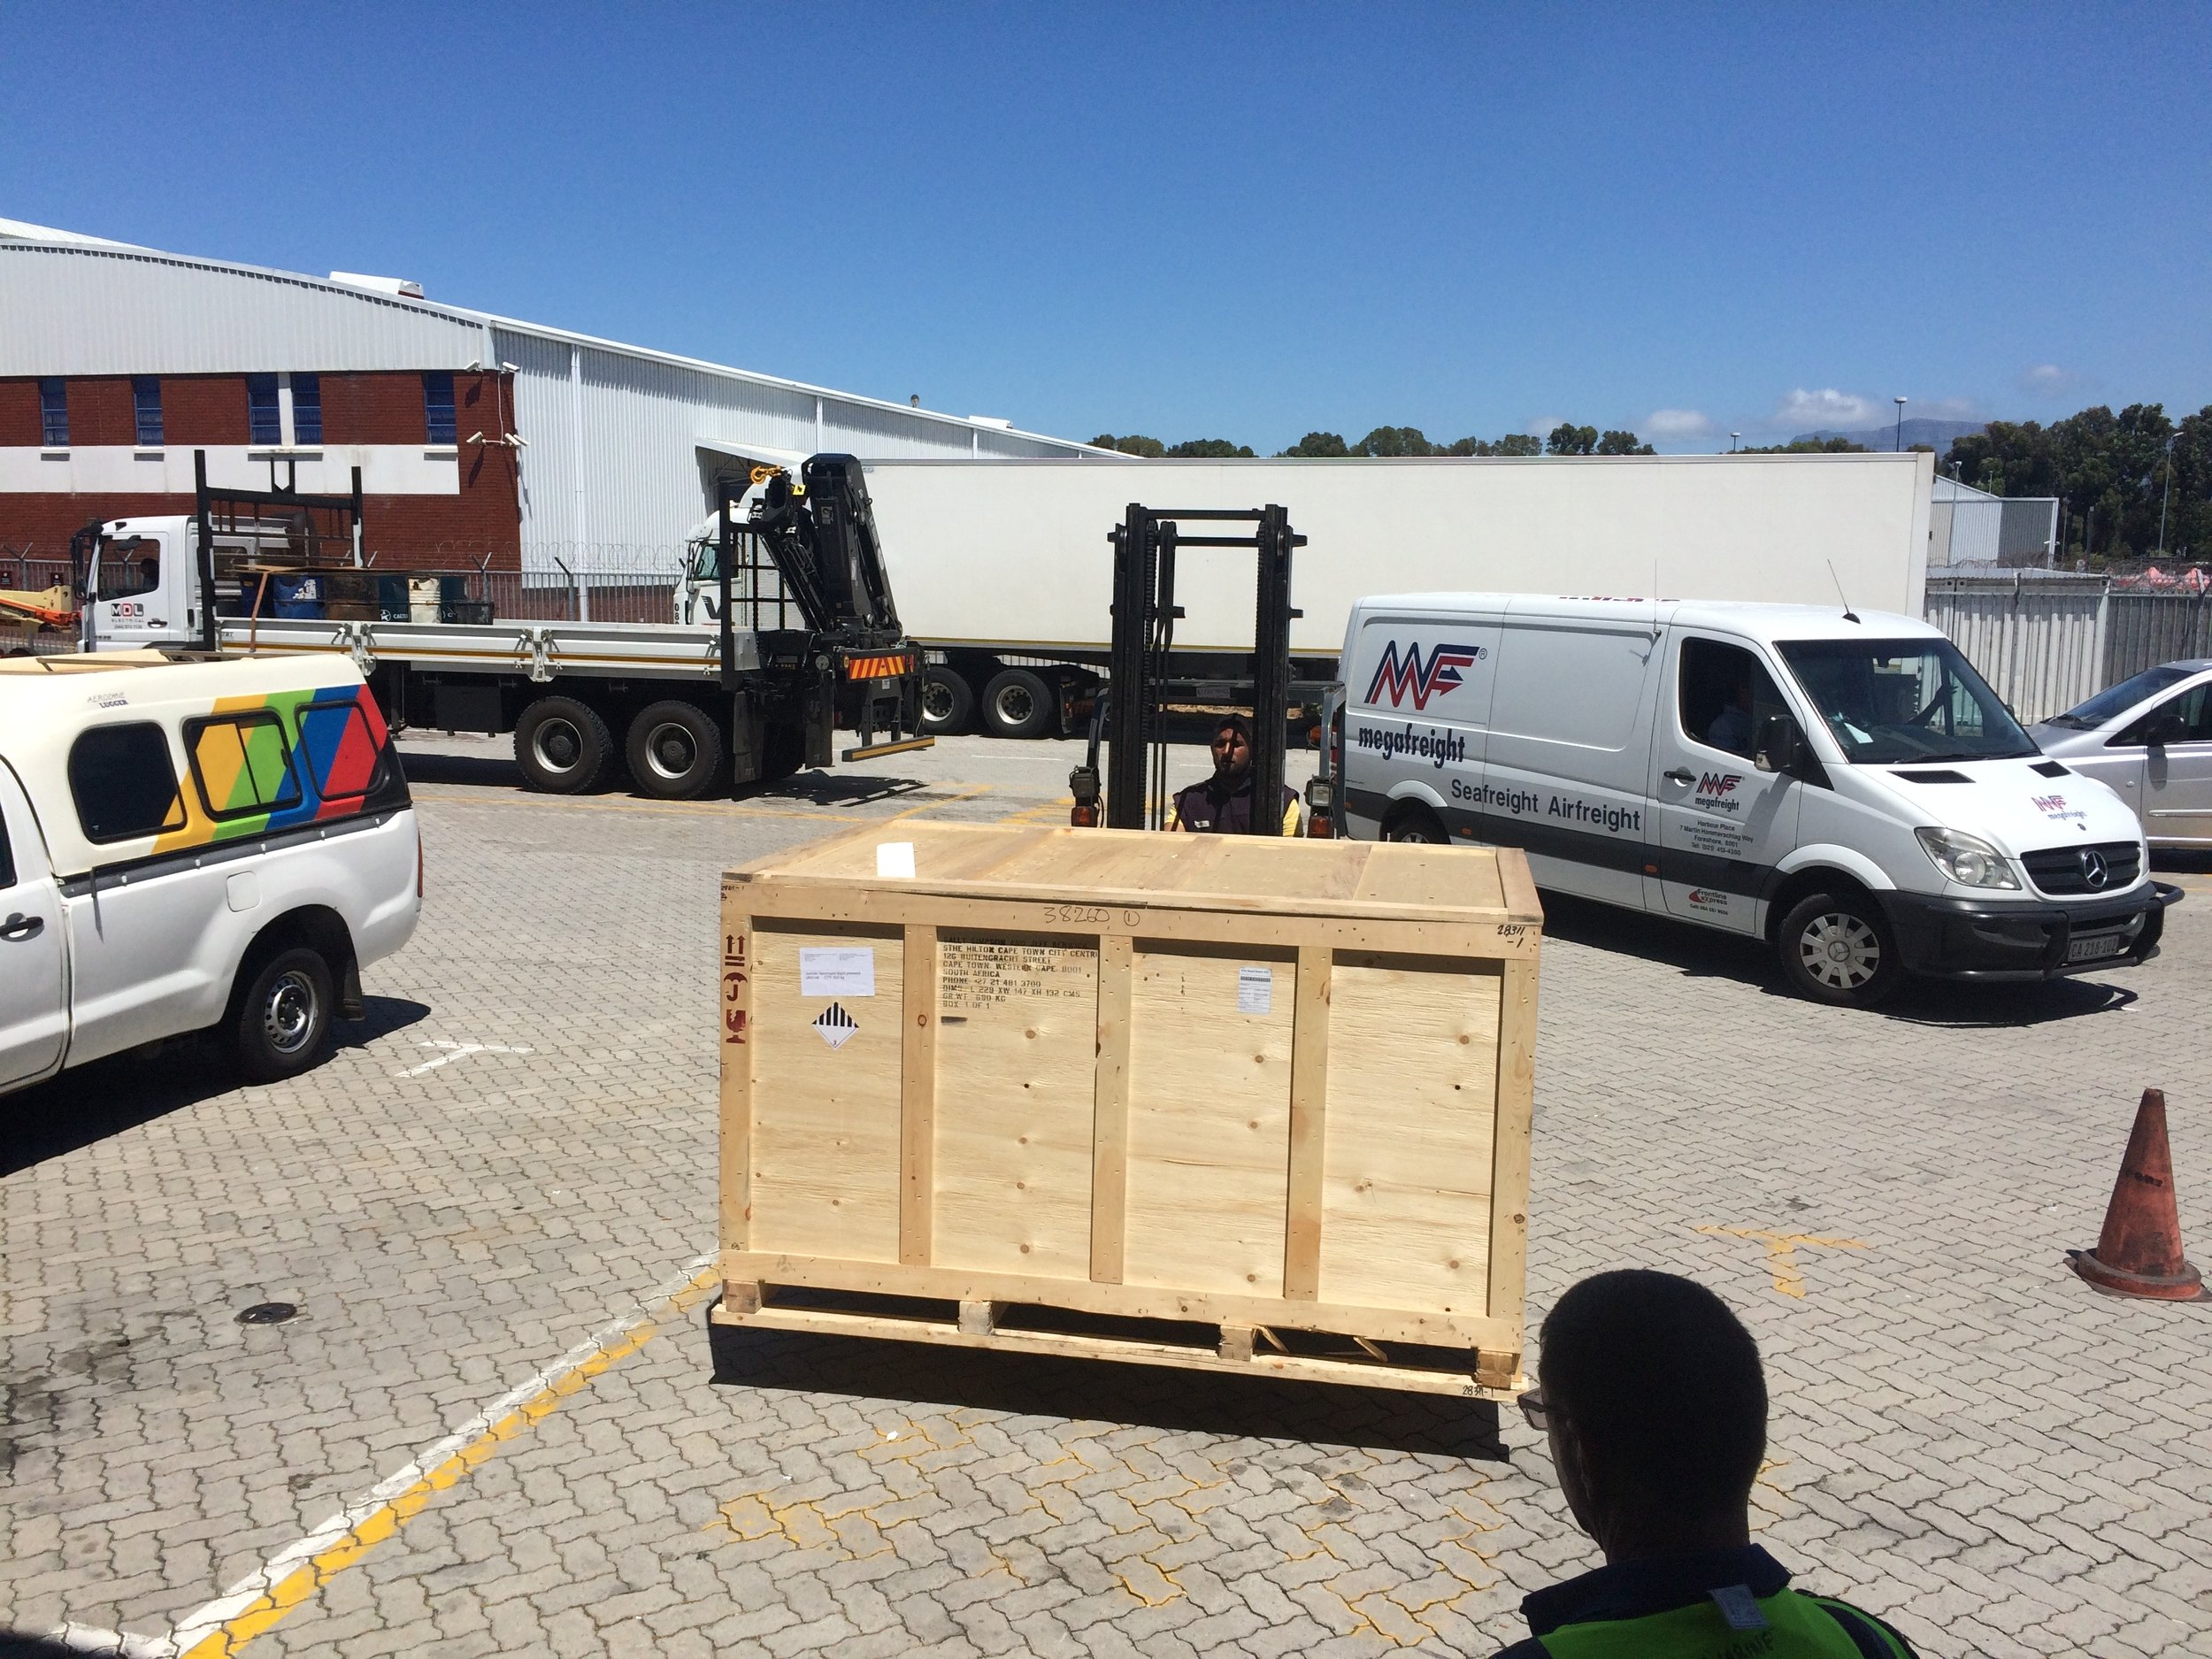 Now this is always a welcome sight, our crate comes out of the warehouse.